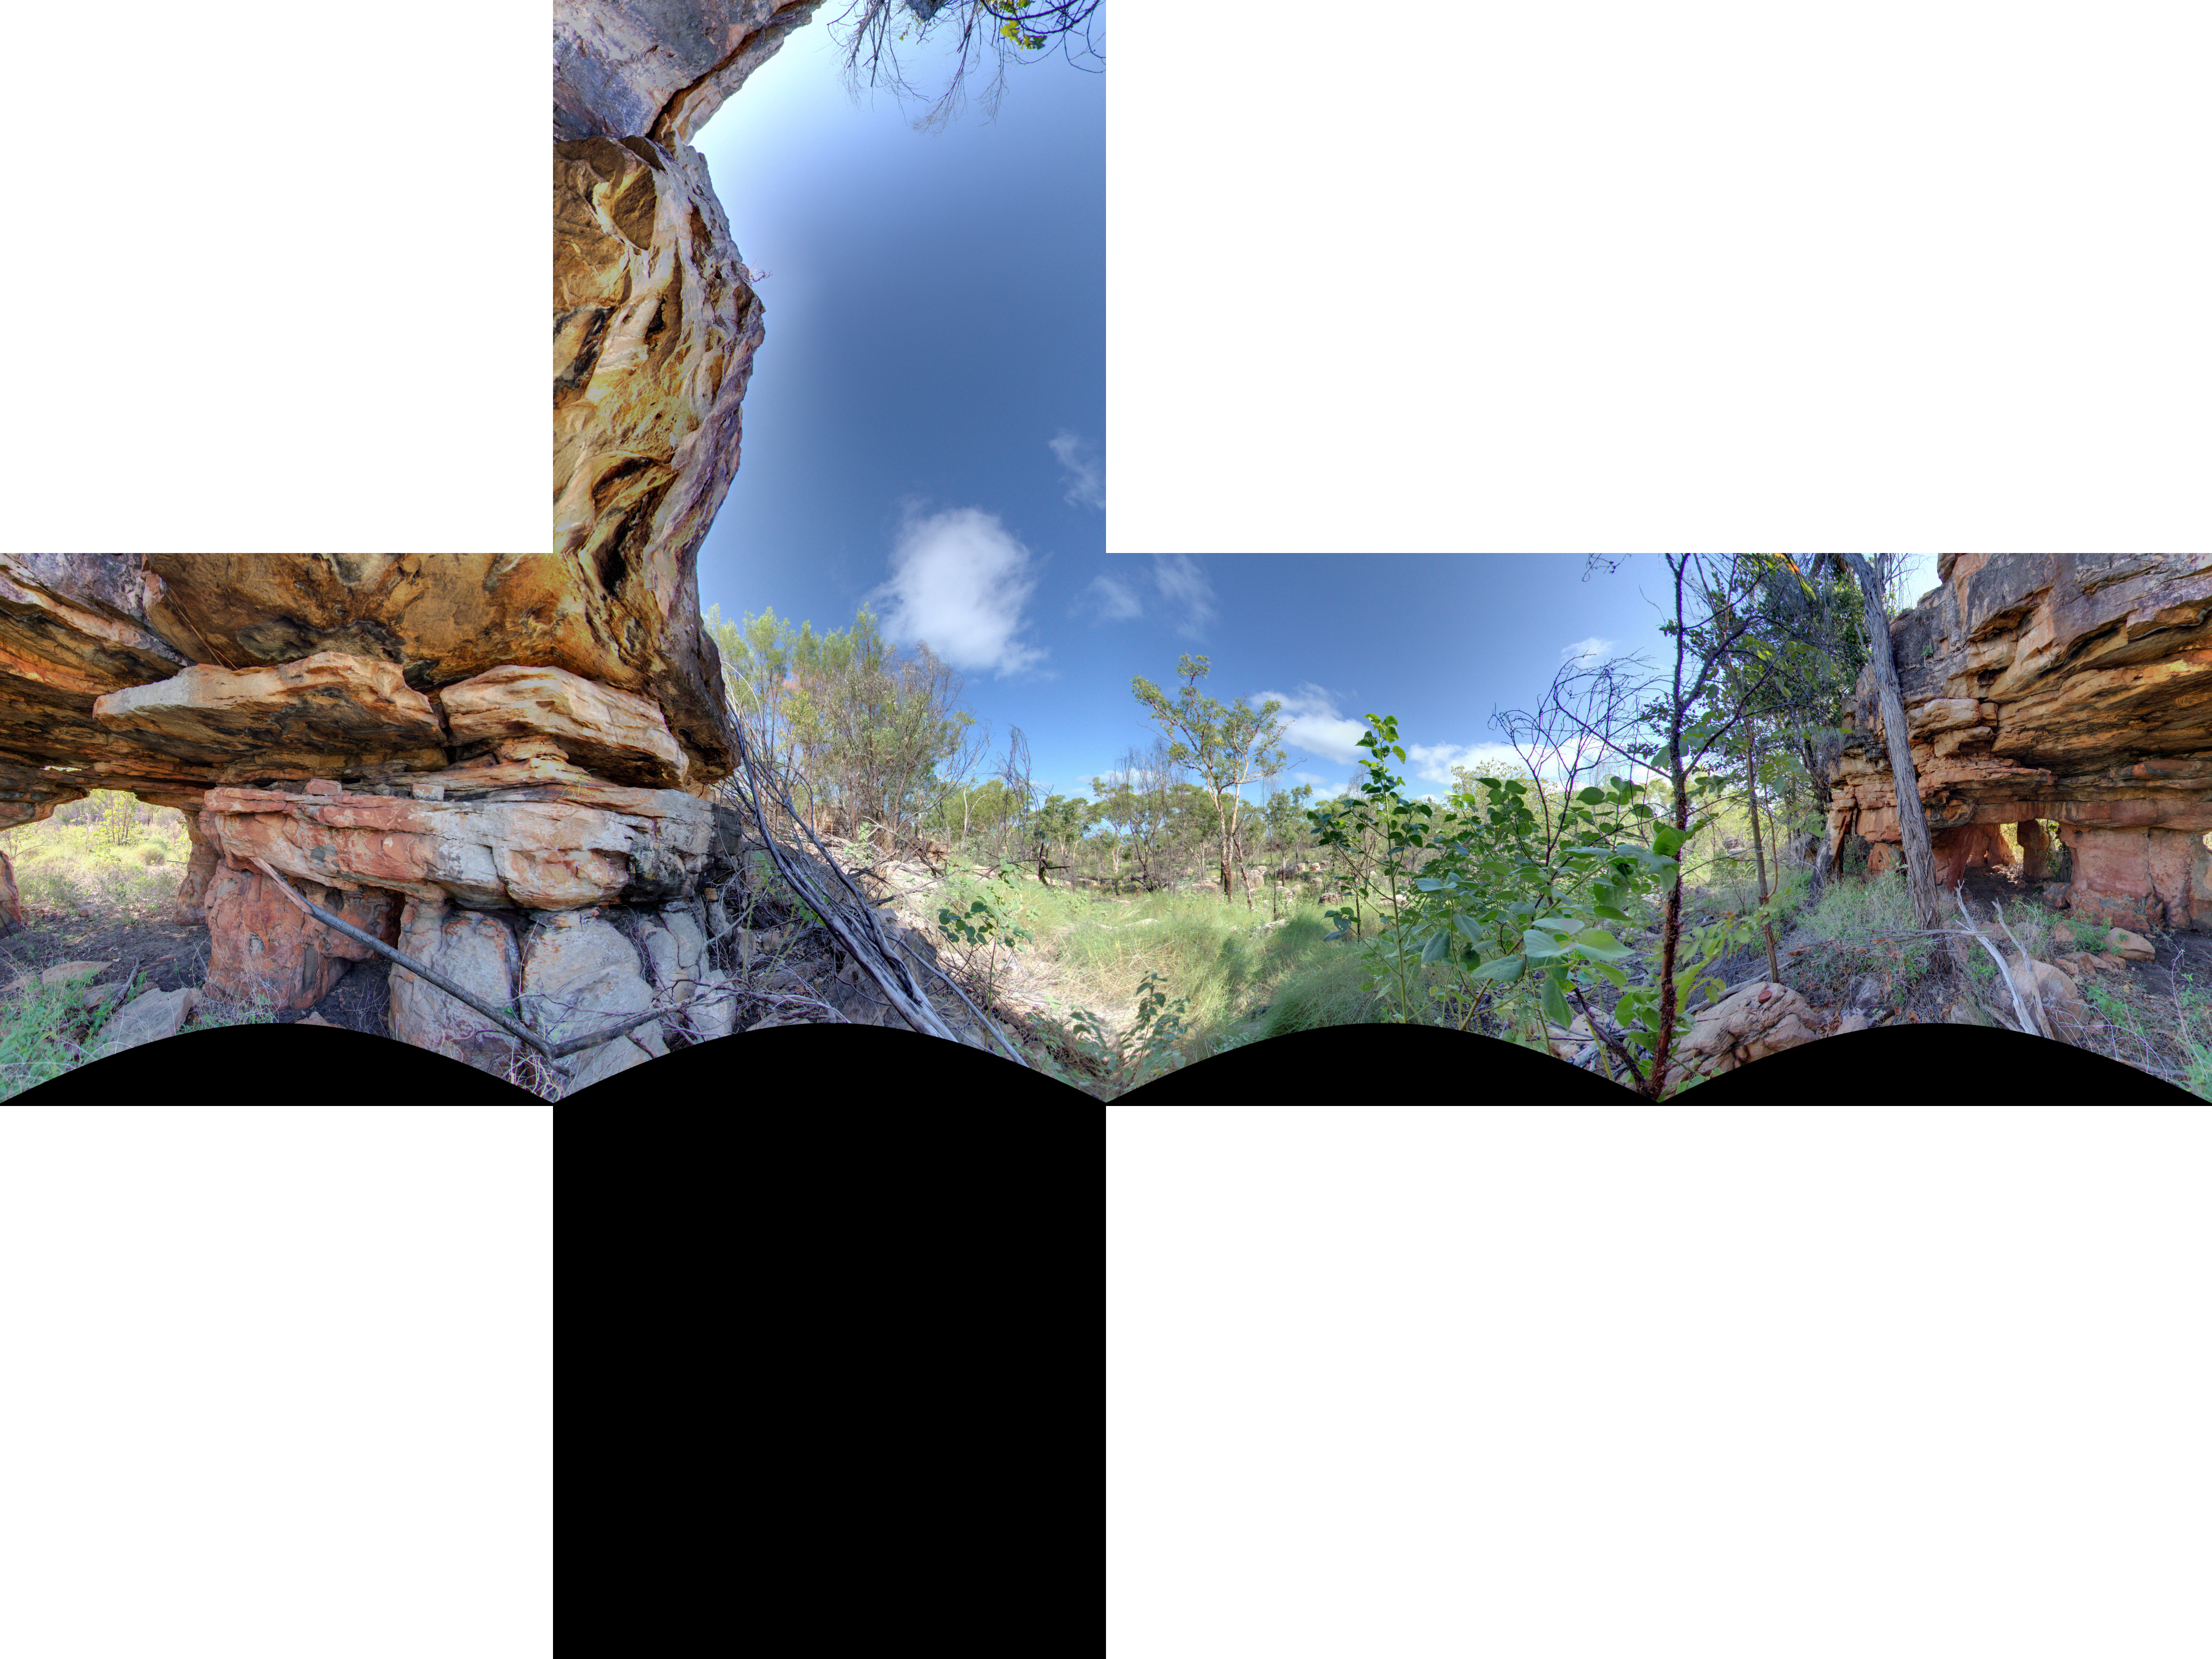 Converting a fisheye image to panoramic, spherical and perspective